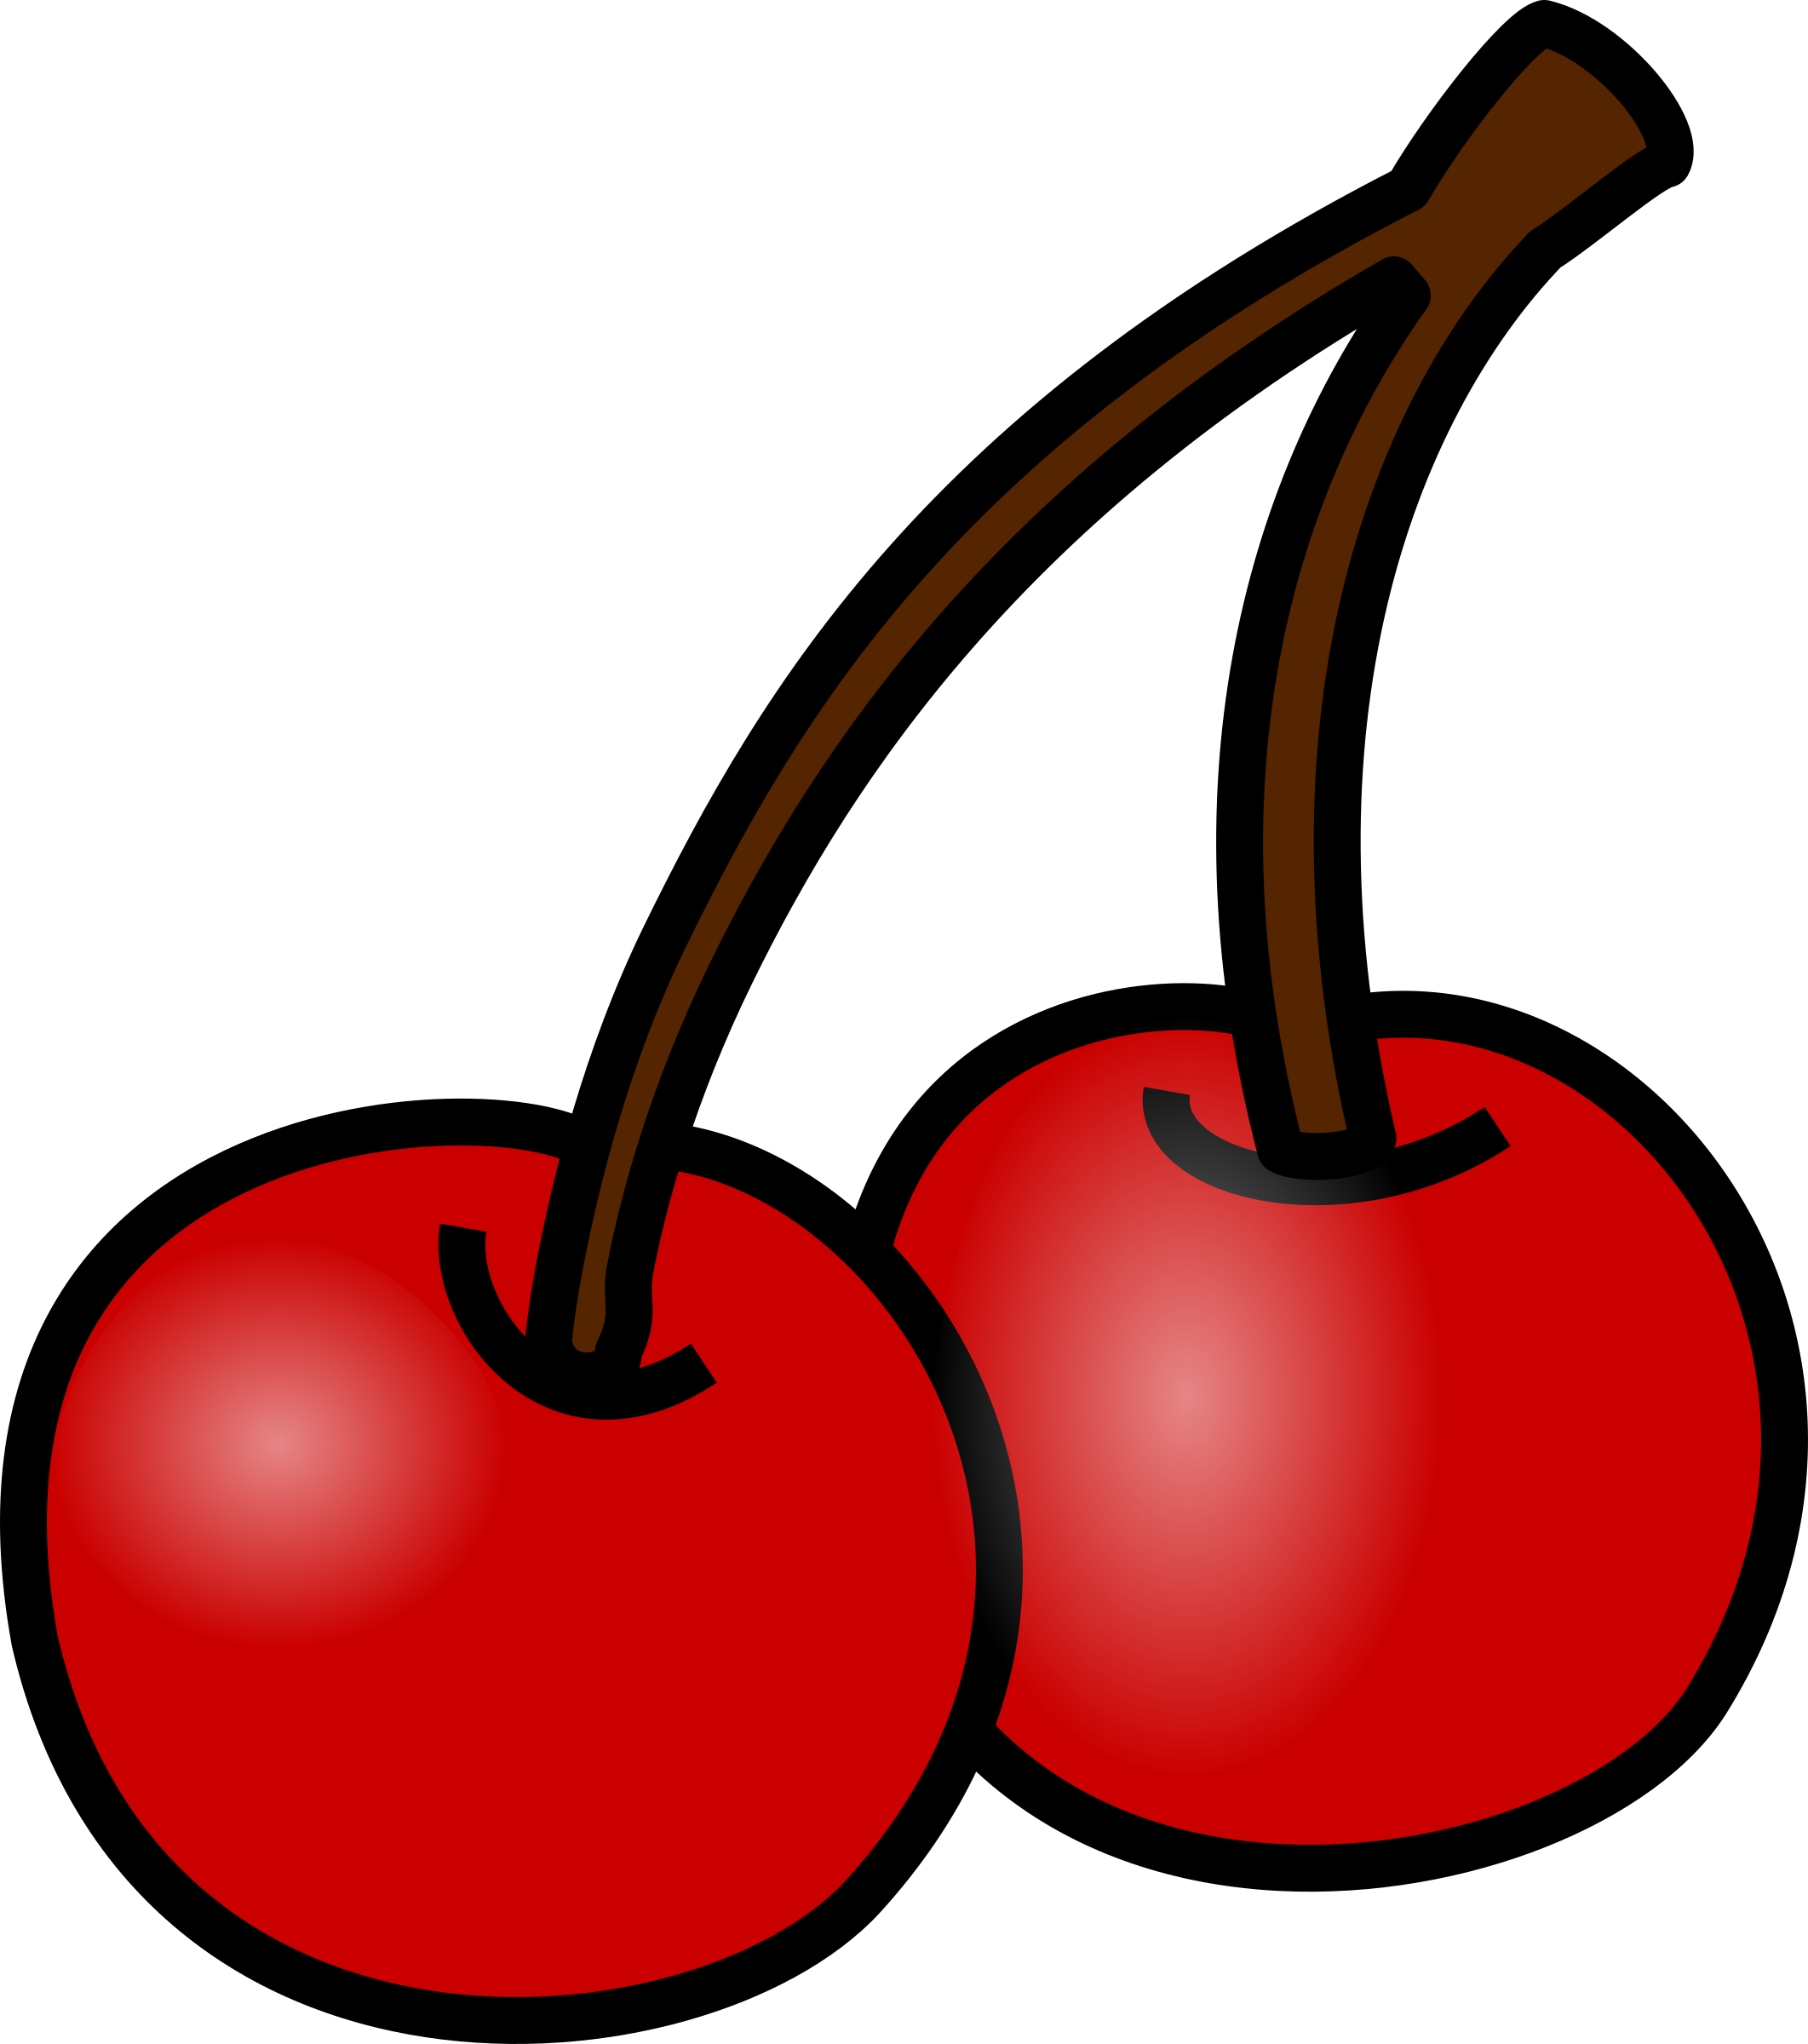 png black and white library Cherry big image png. Cherries clipart.